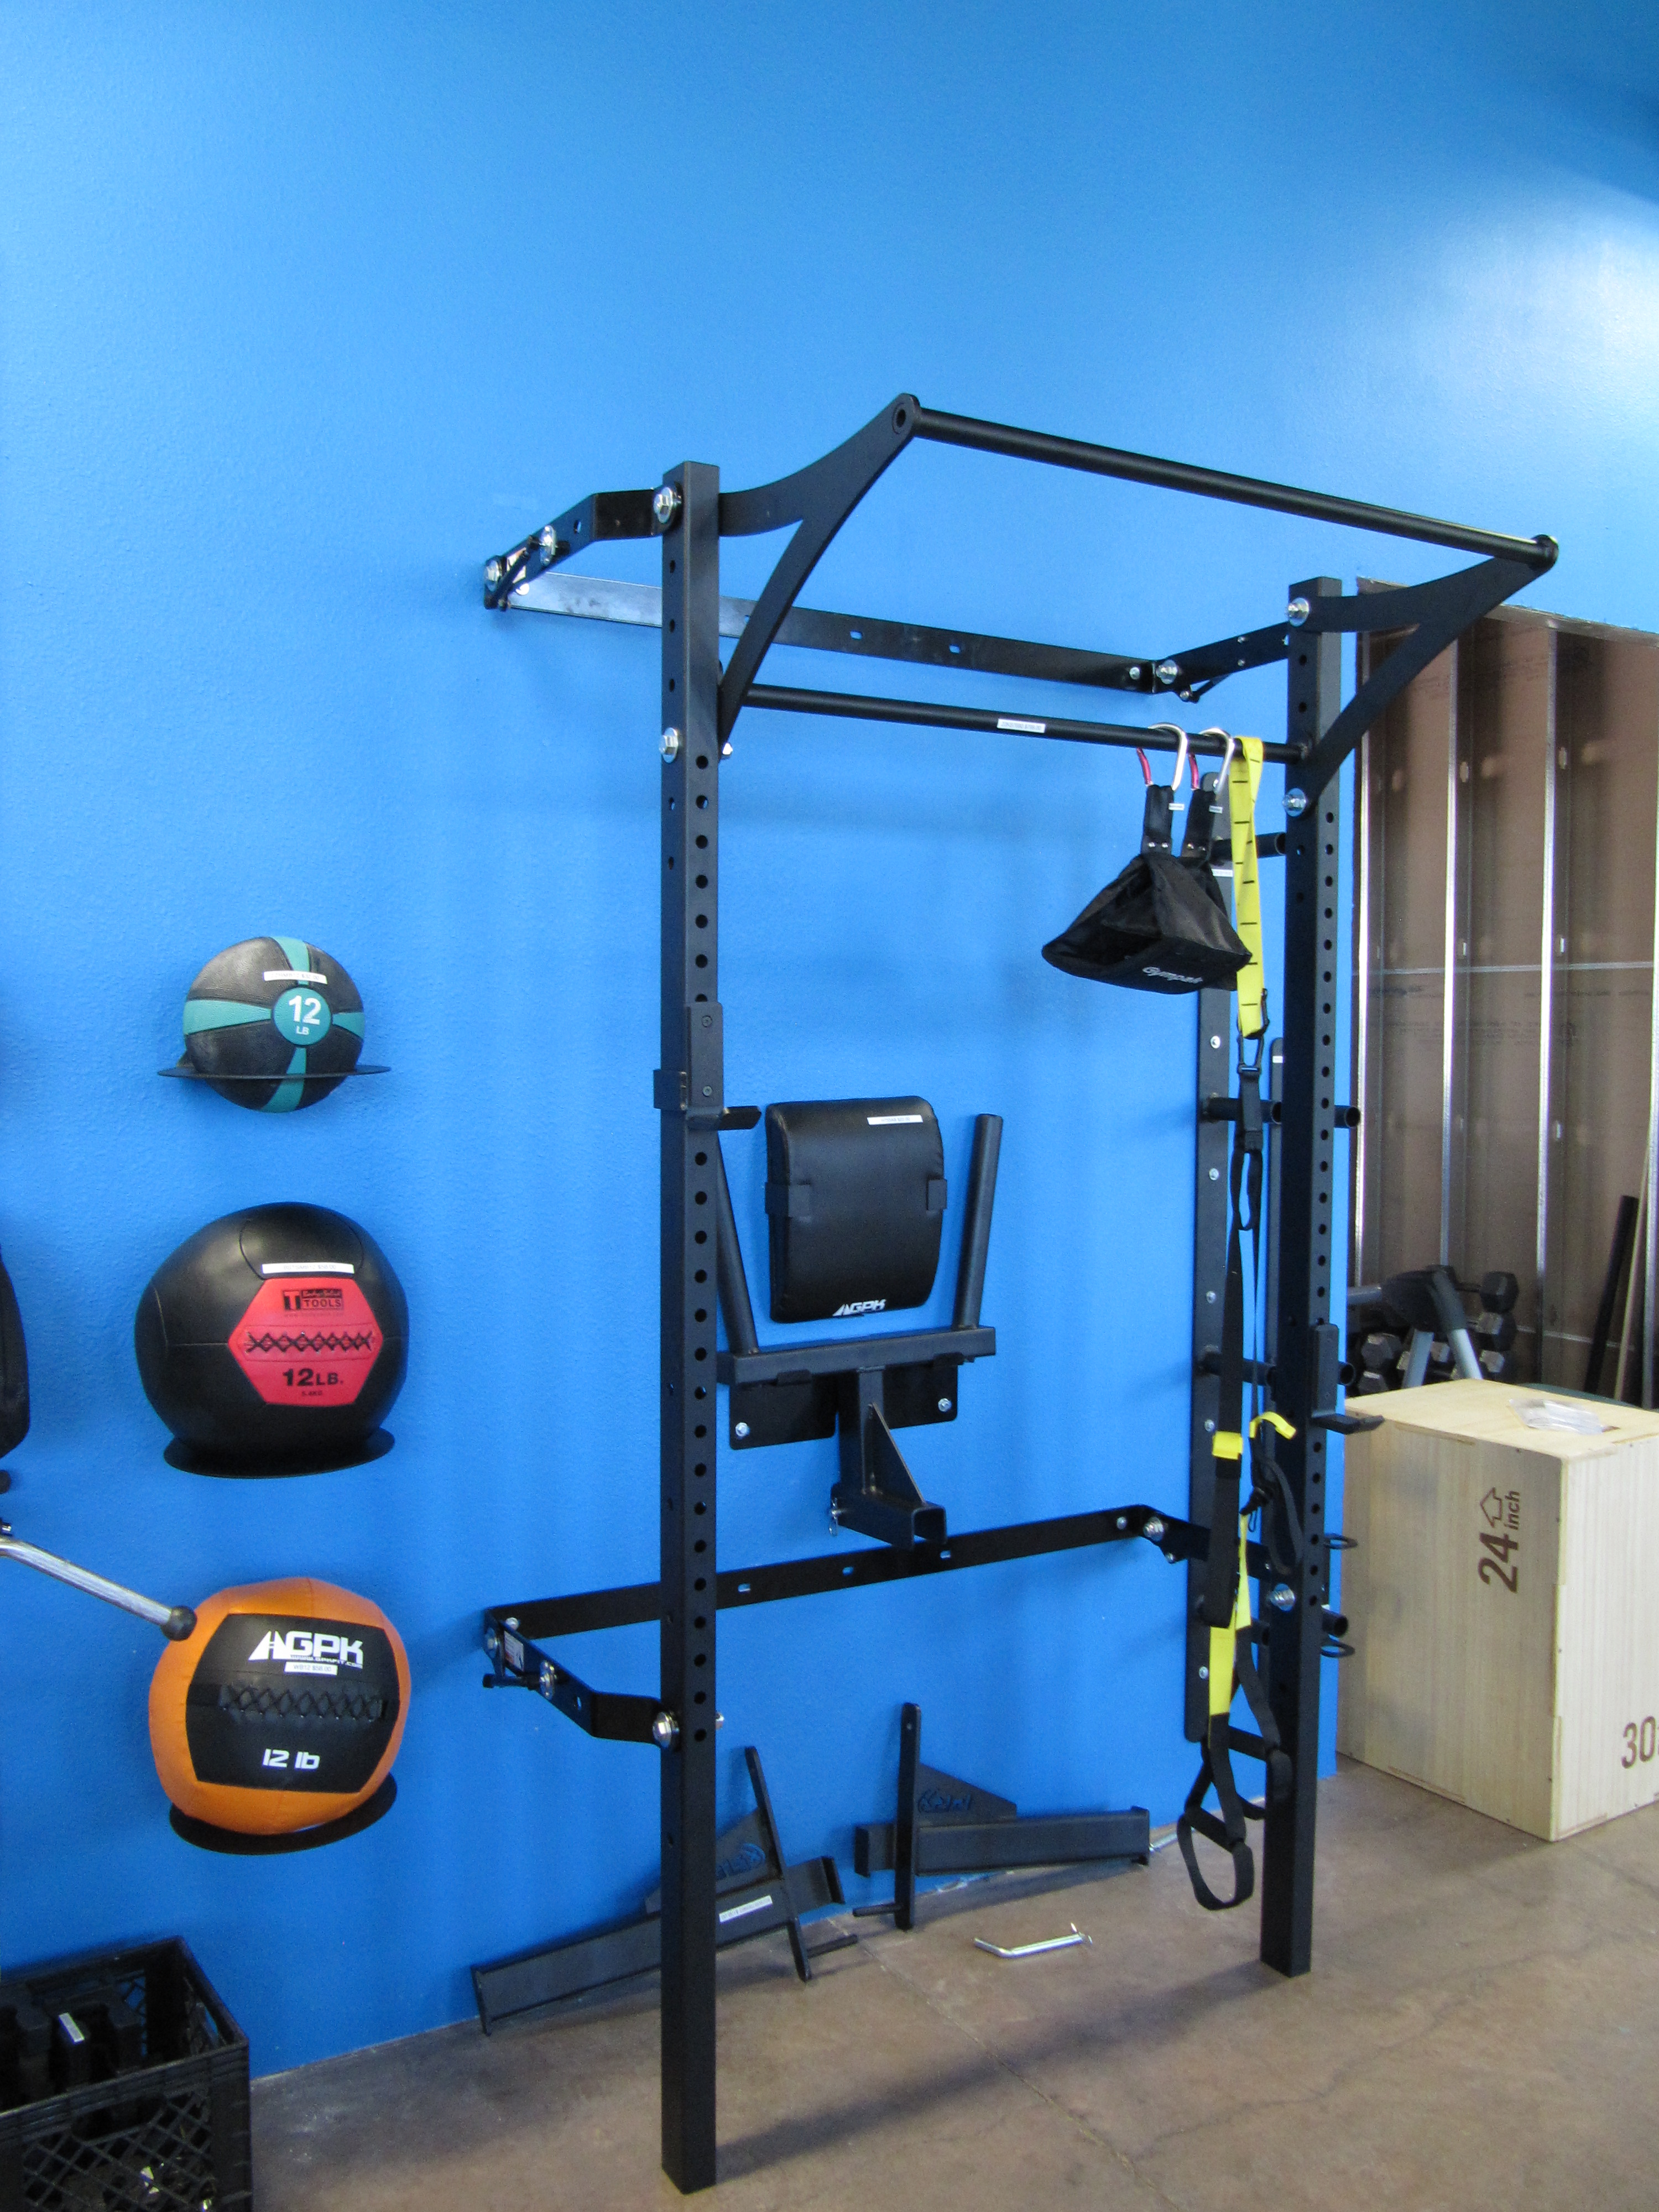 Garage gym shark tank prx performance profile rack review